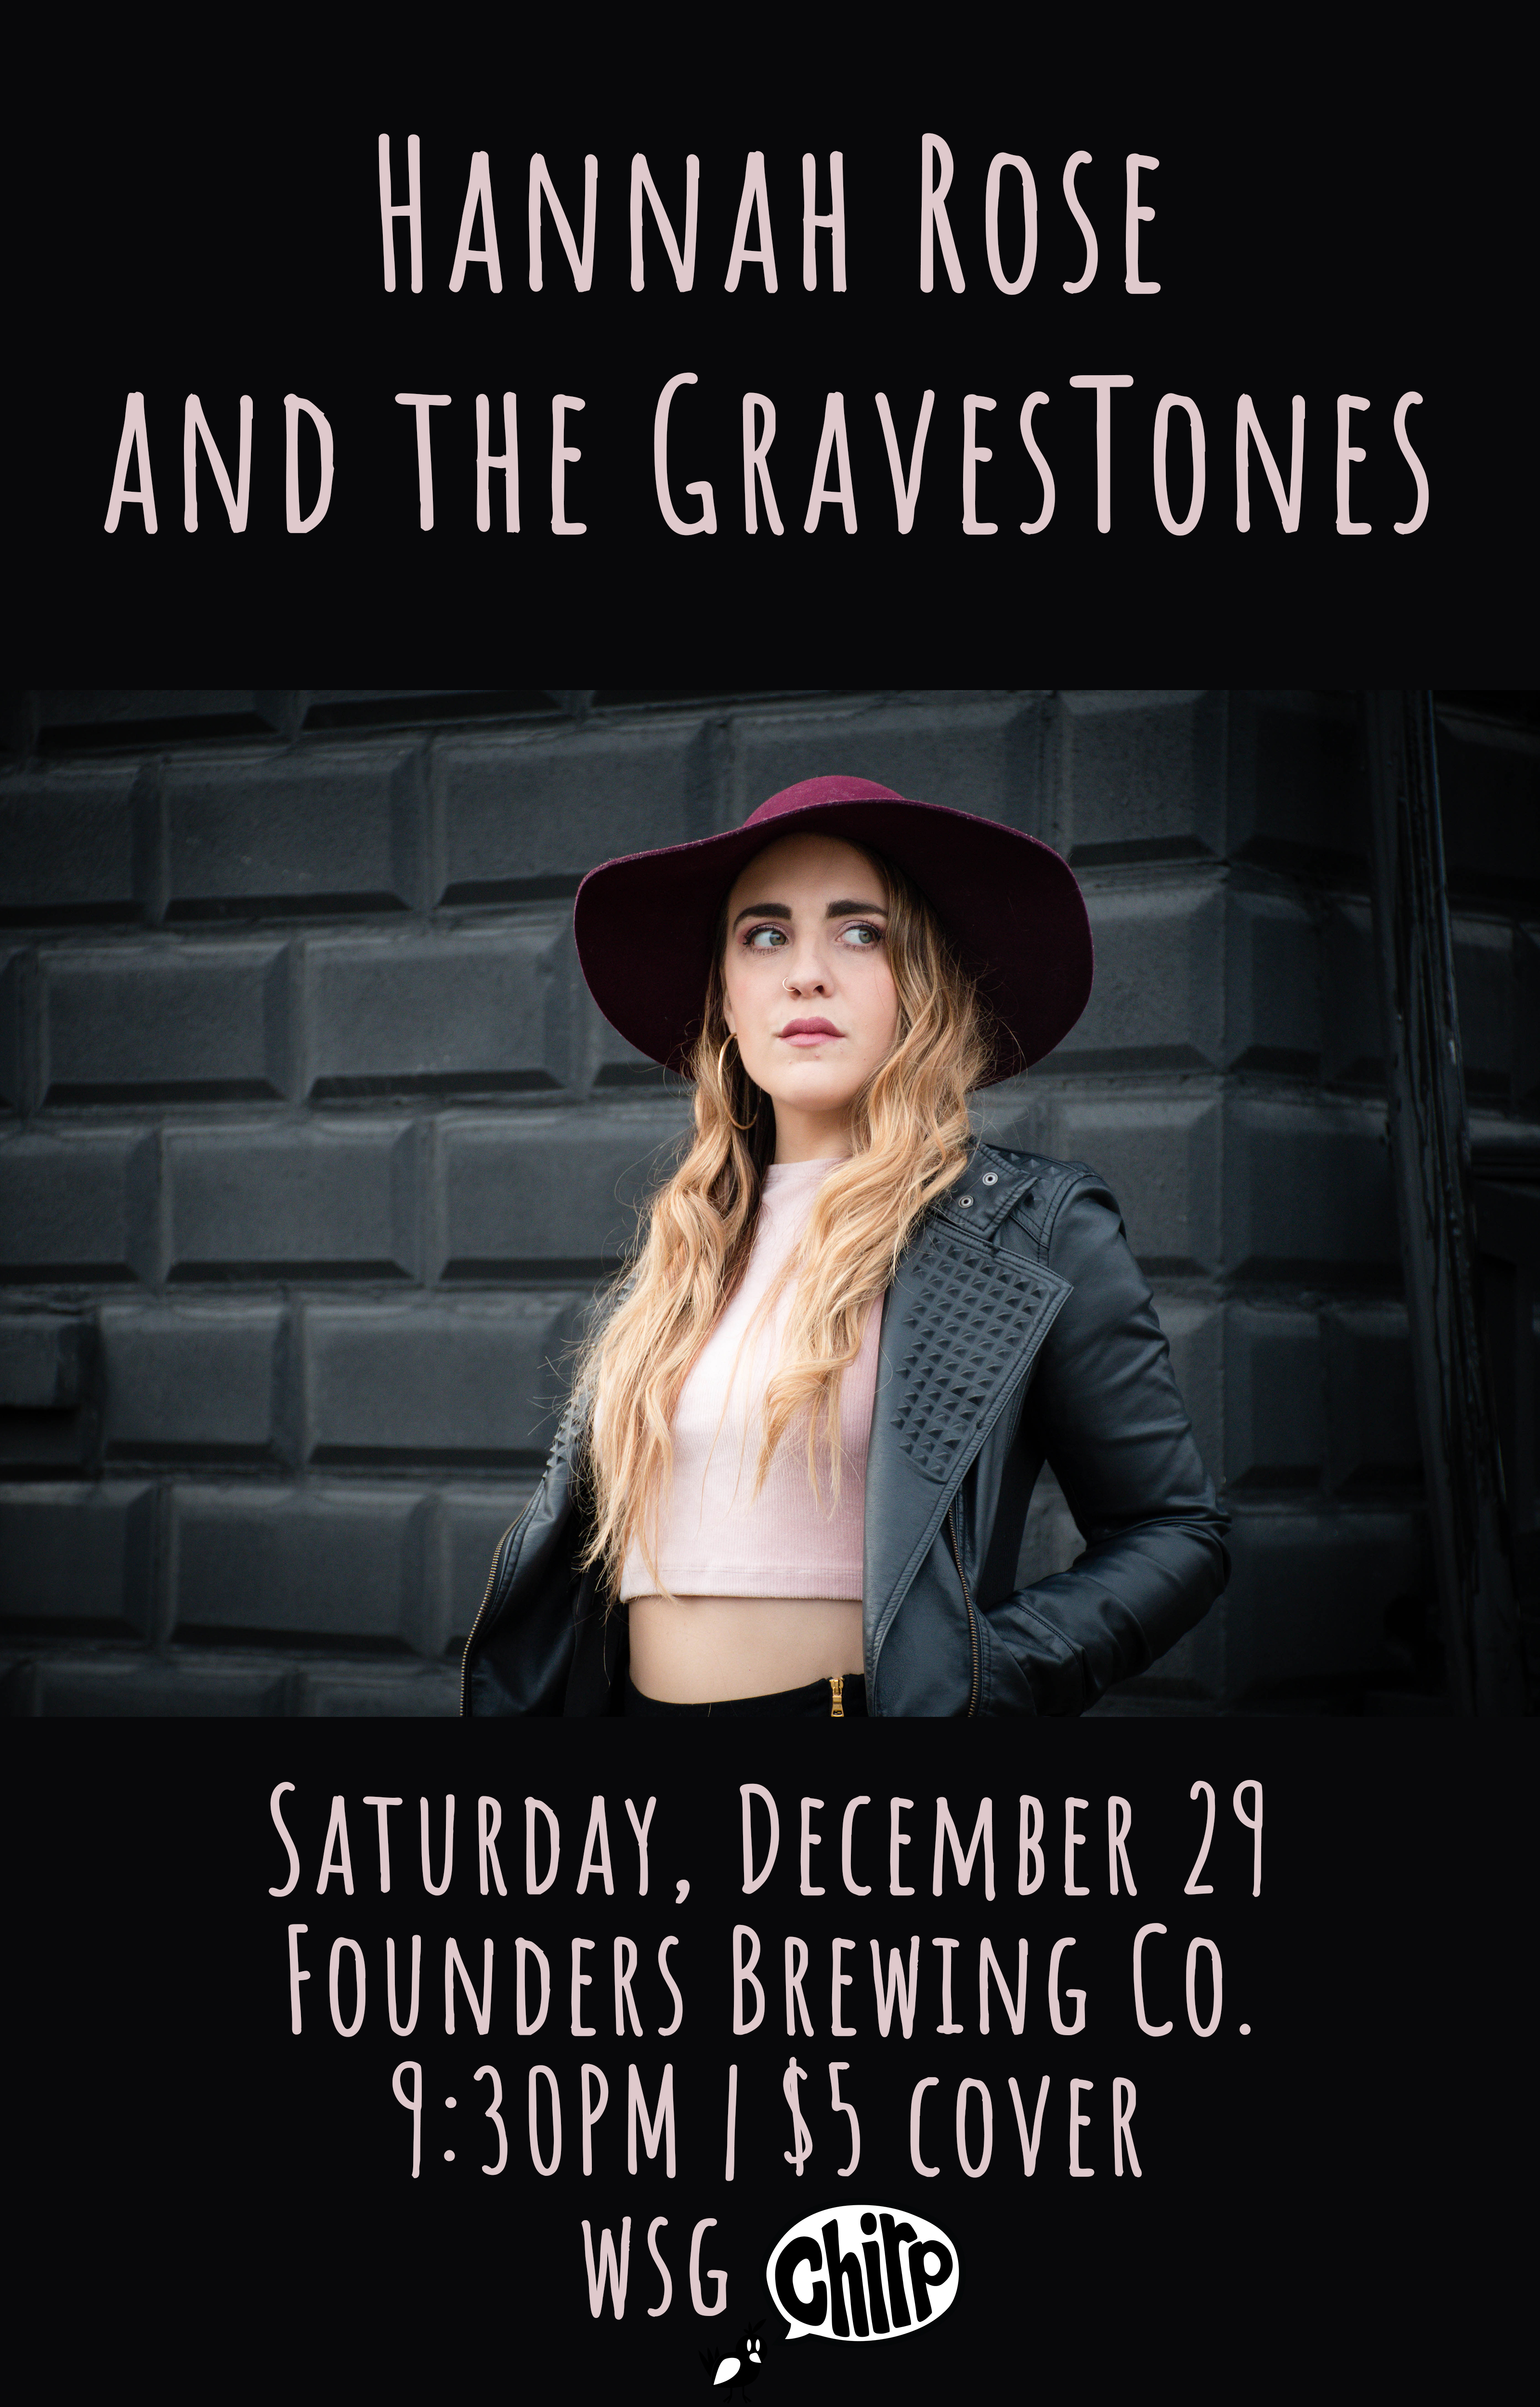 Hannah Rose and The Gravestones event poster